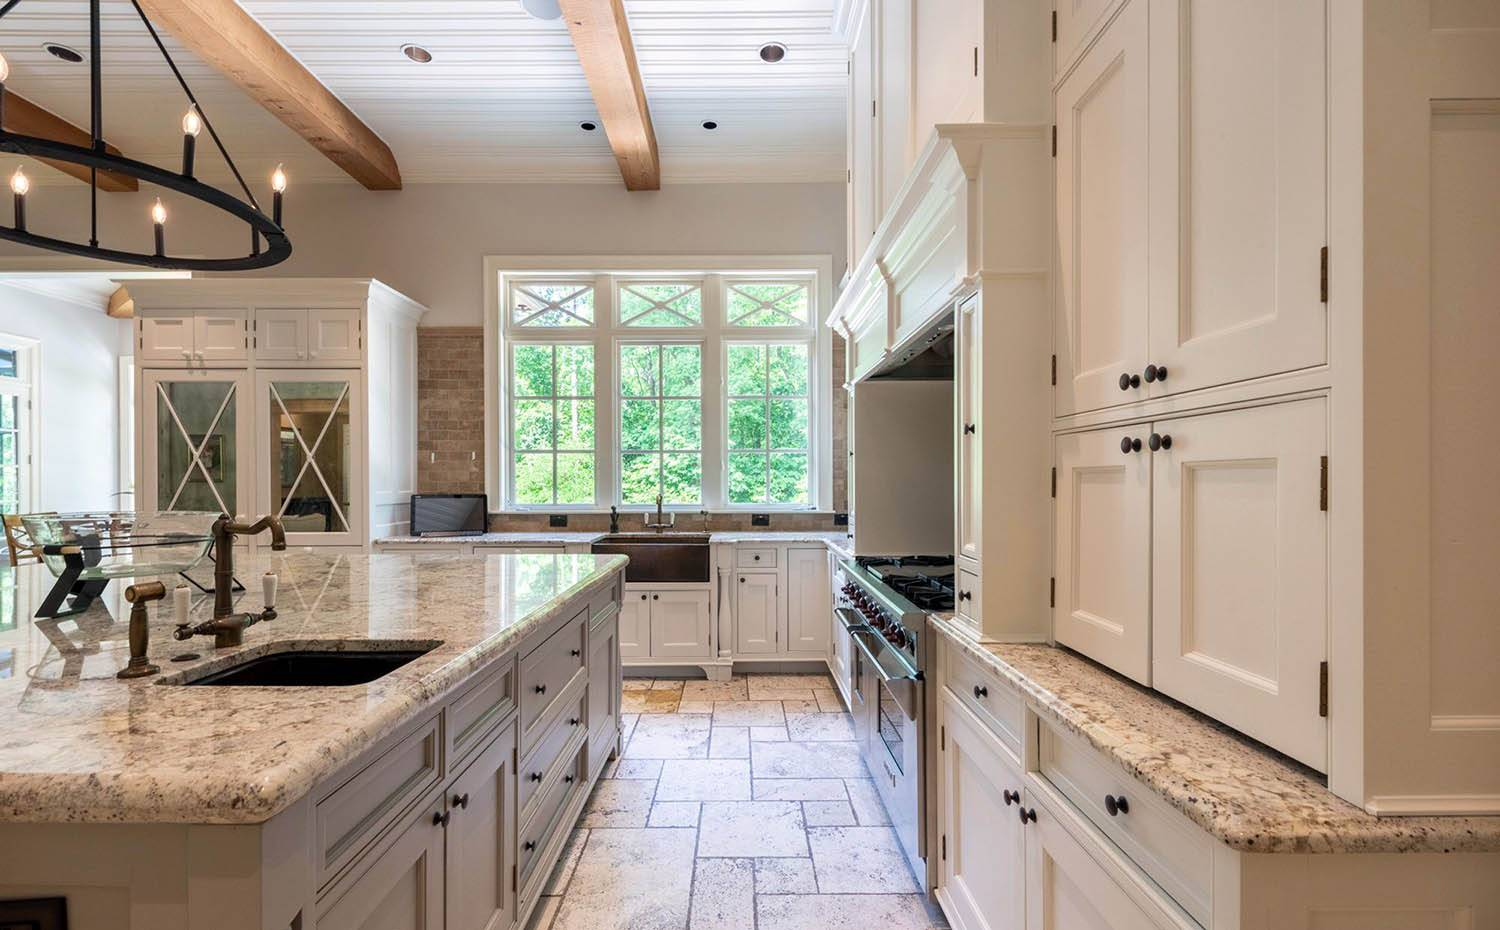 cream kitchen cabinets with light speckled granite countertops